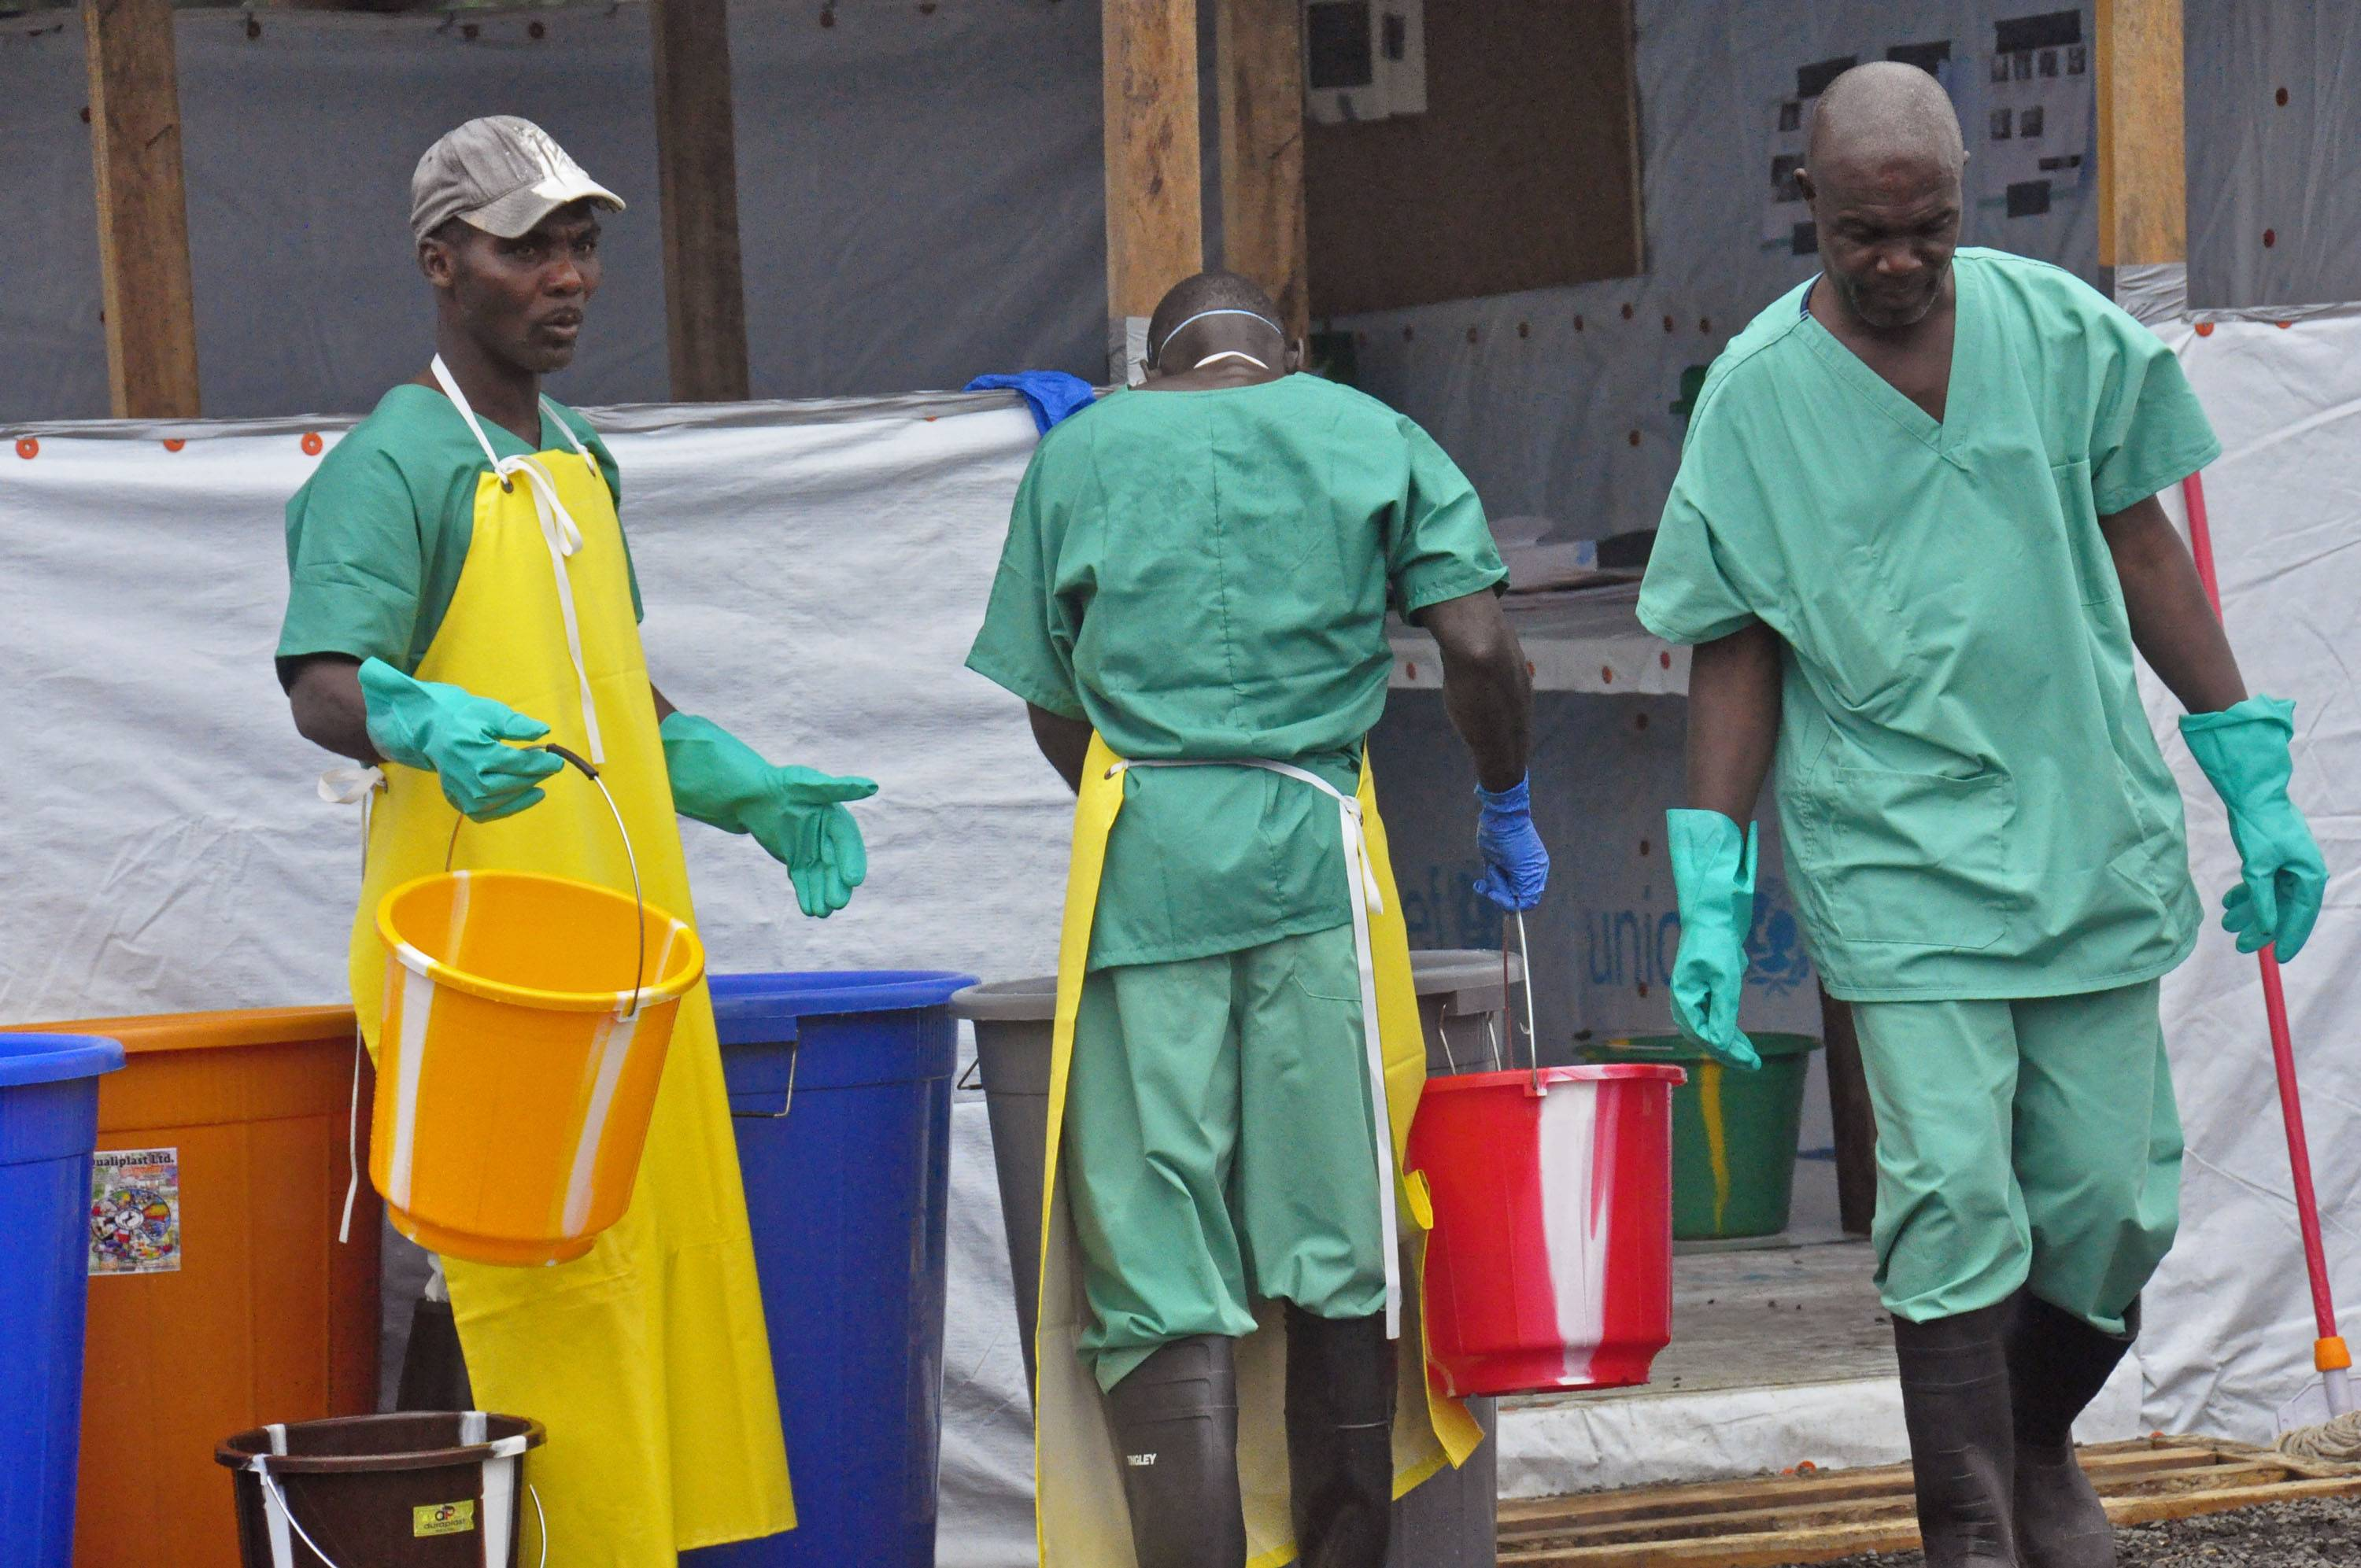 Health workers with buckets, as part of their Ebola virus prevention protective gear, at an Ebola treatment center in the city of Monrovia, Liberia, Monday.